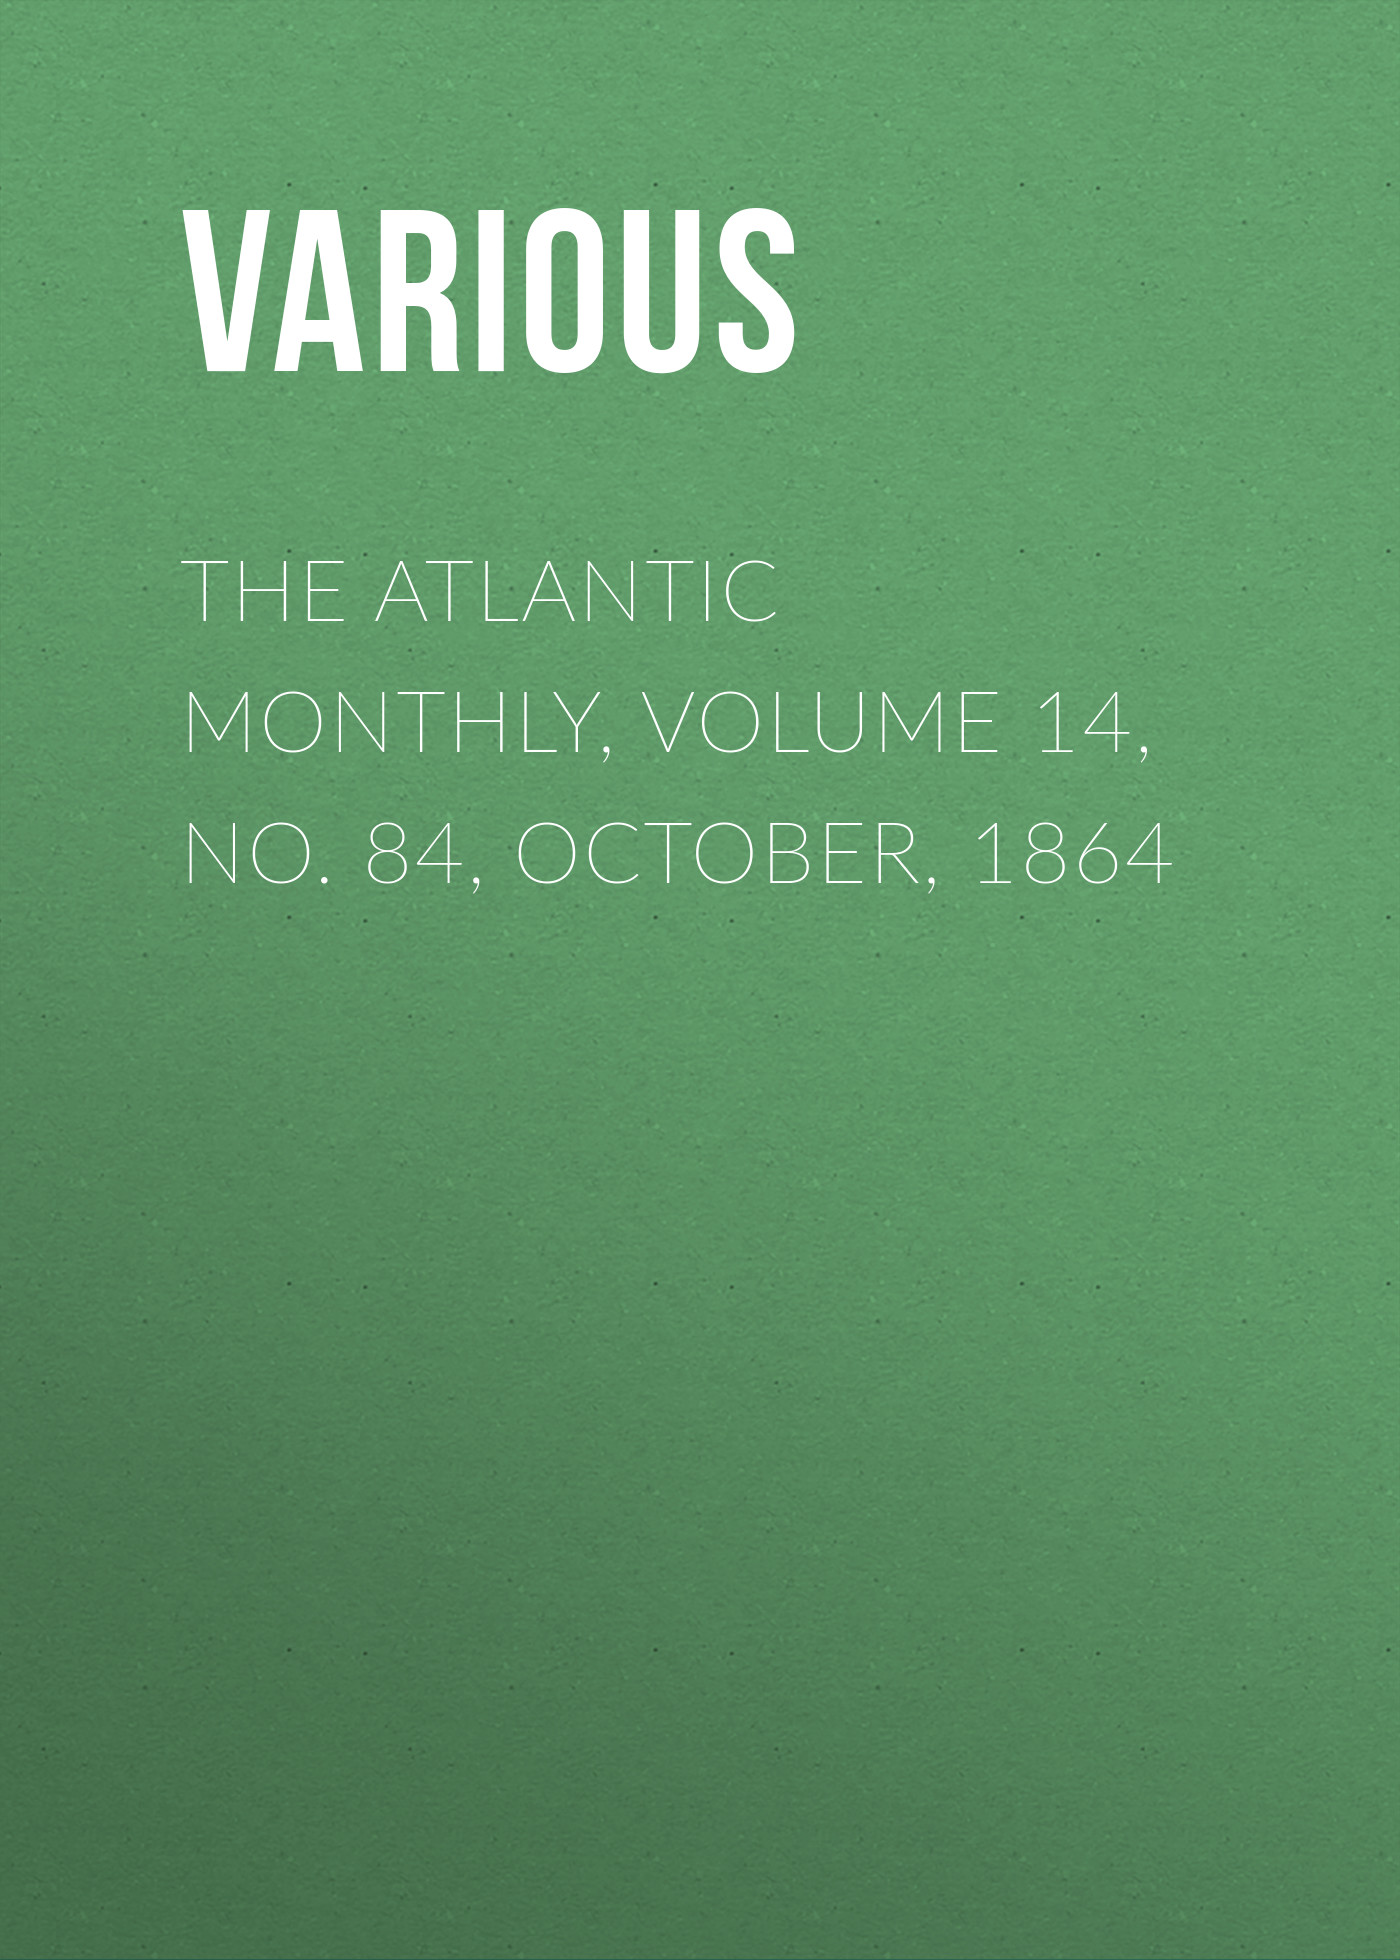 Various The Atlantic Monthly, Volume 14, No. 84, October, 1864 october